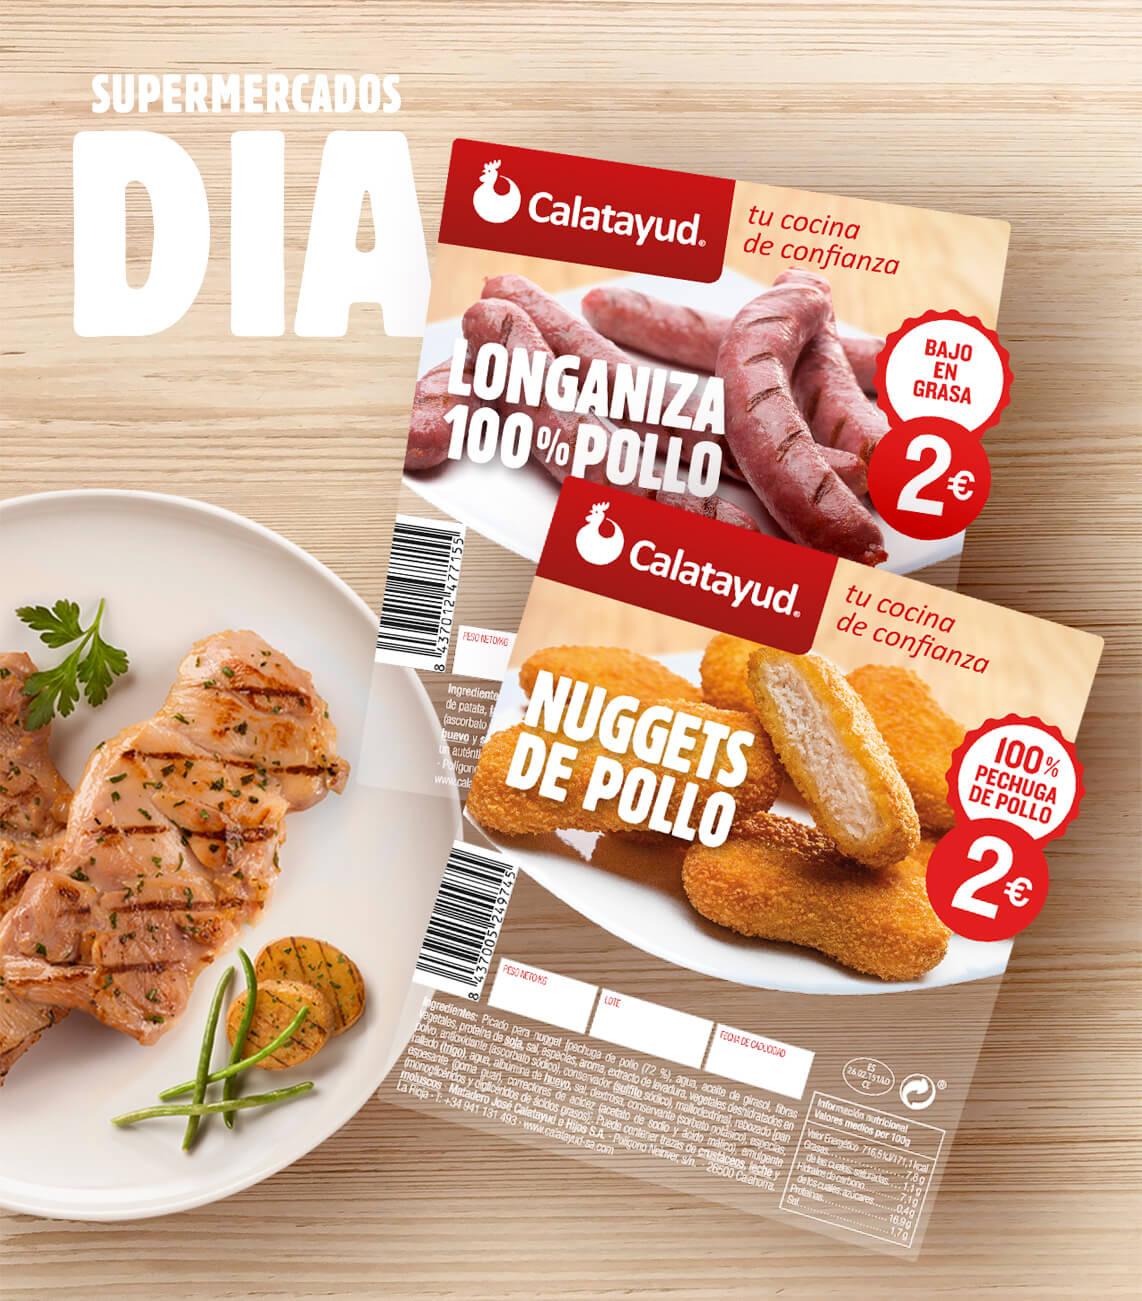 packaging-nuggets-longaniza-pollo-calatayud-supermercados-dia